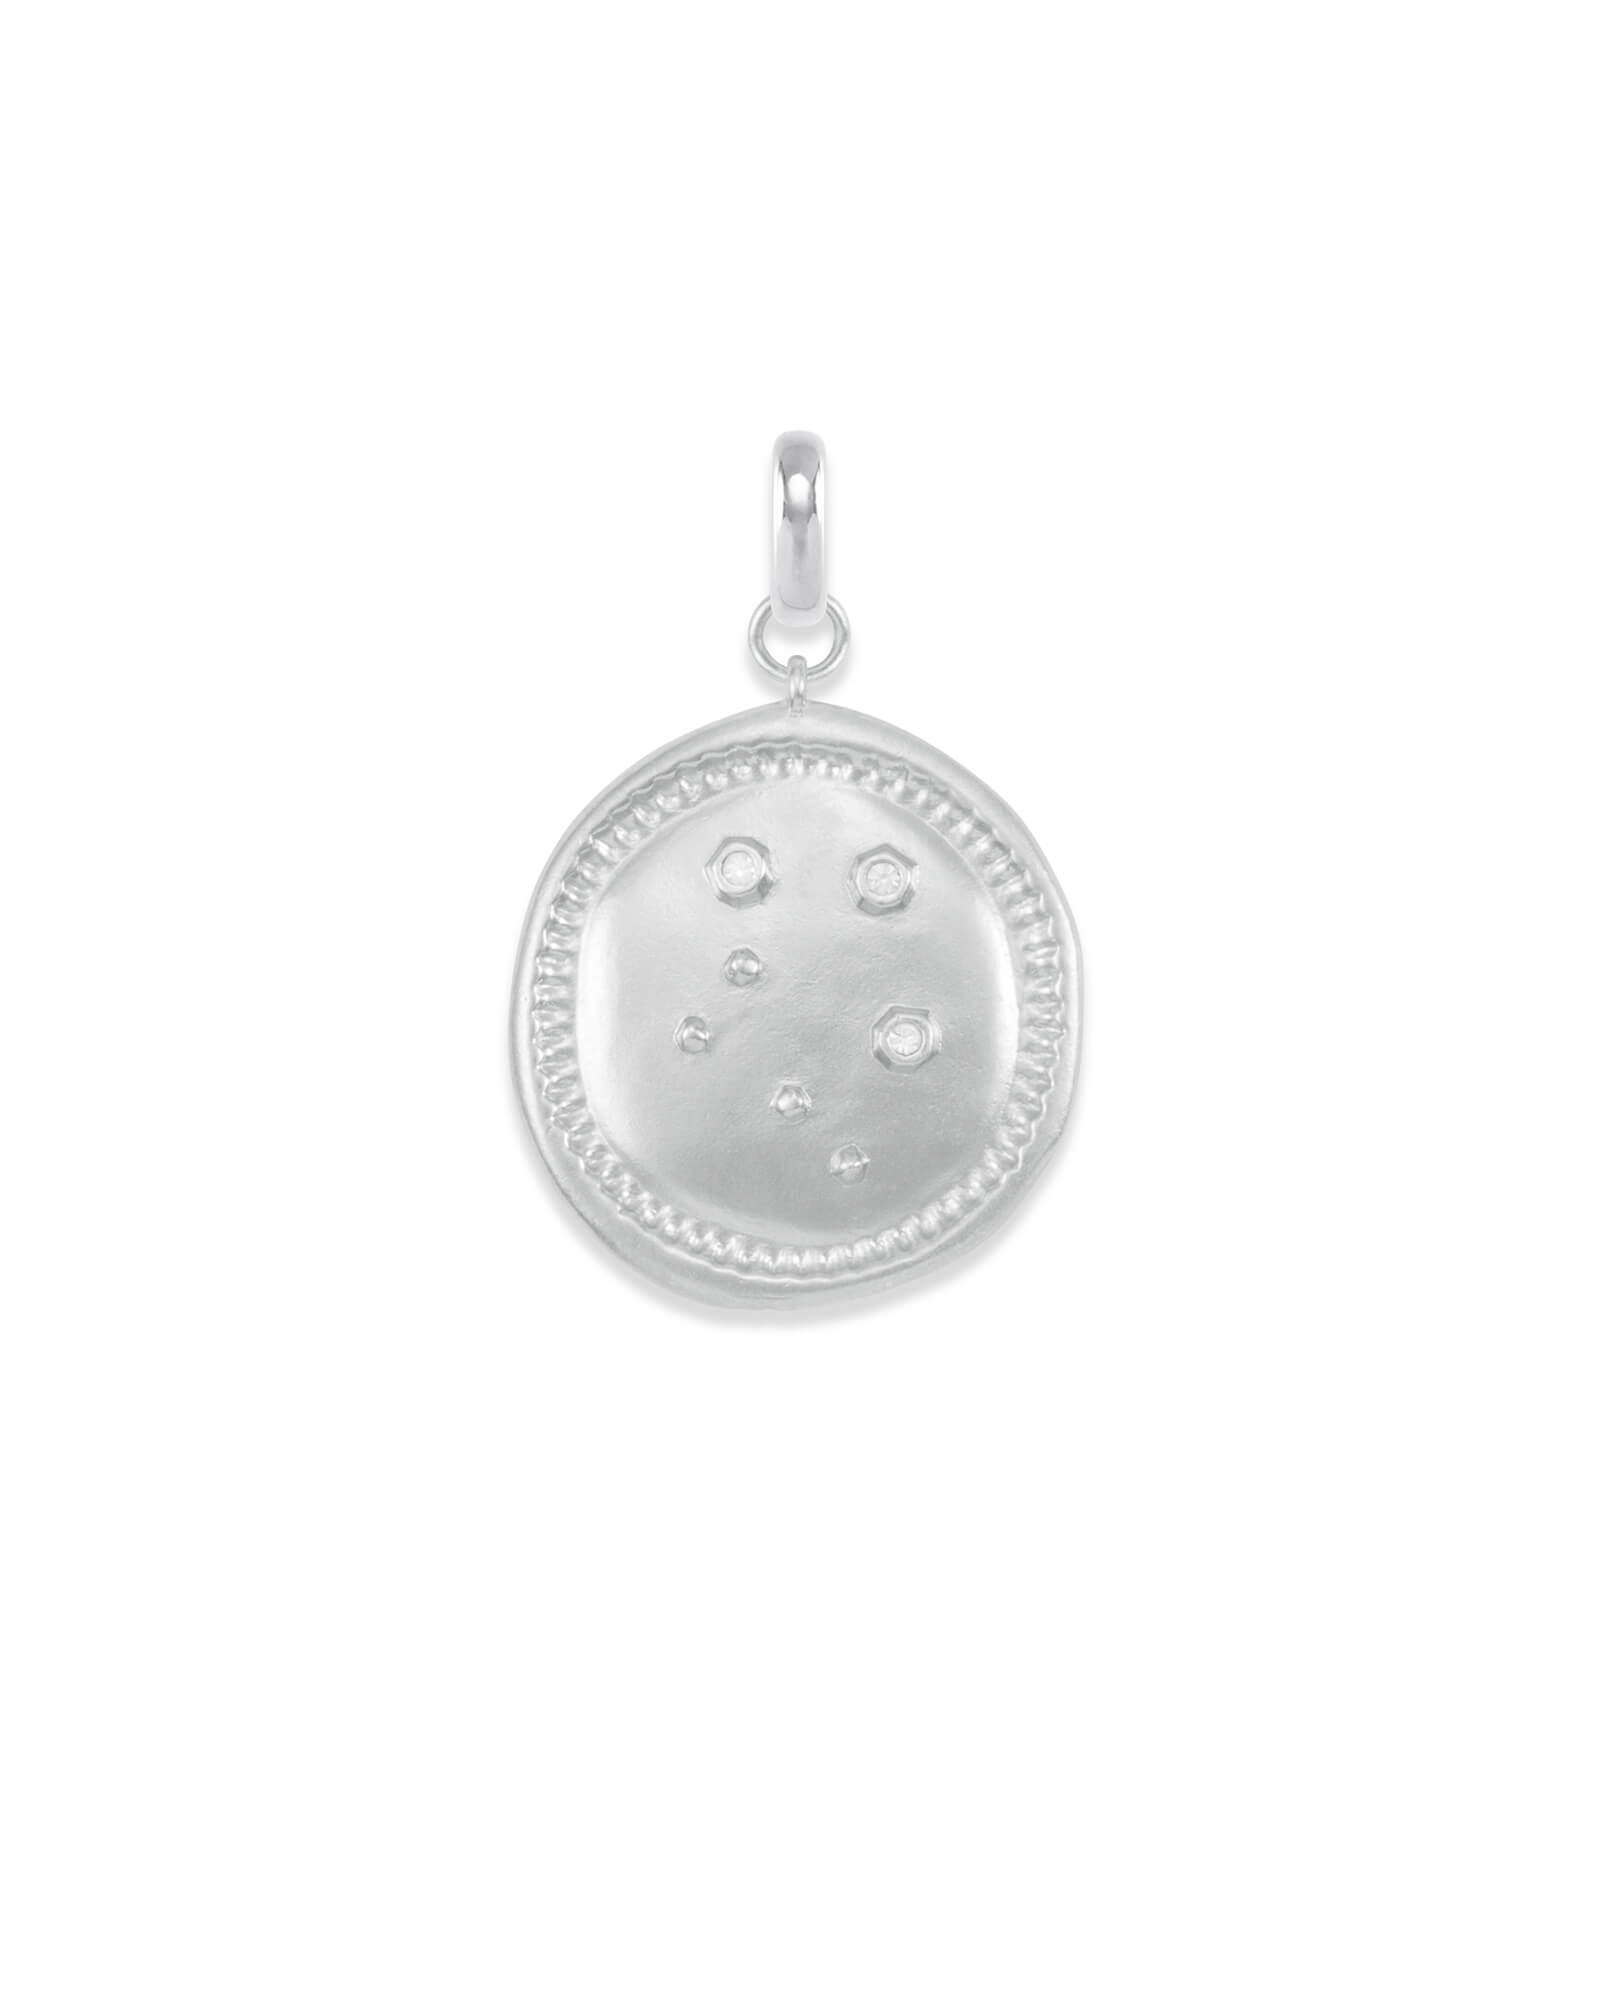 Libra Coin Charm in Silver